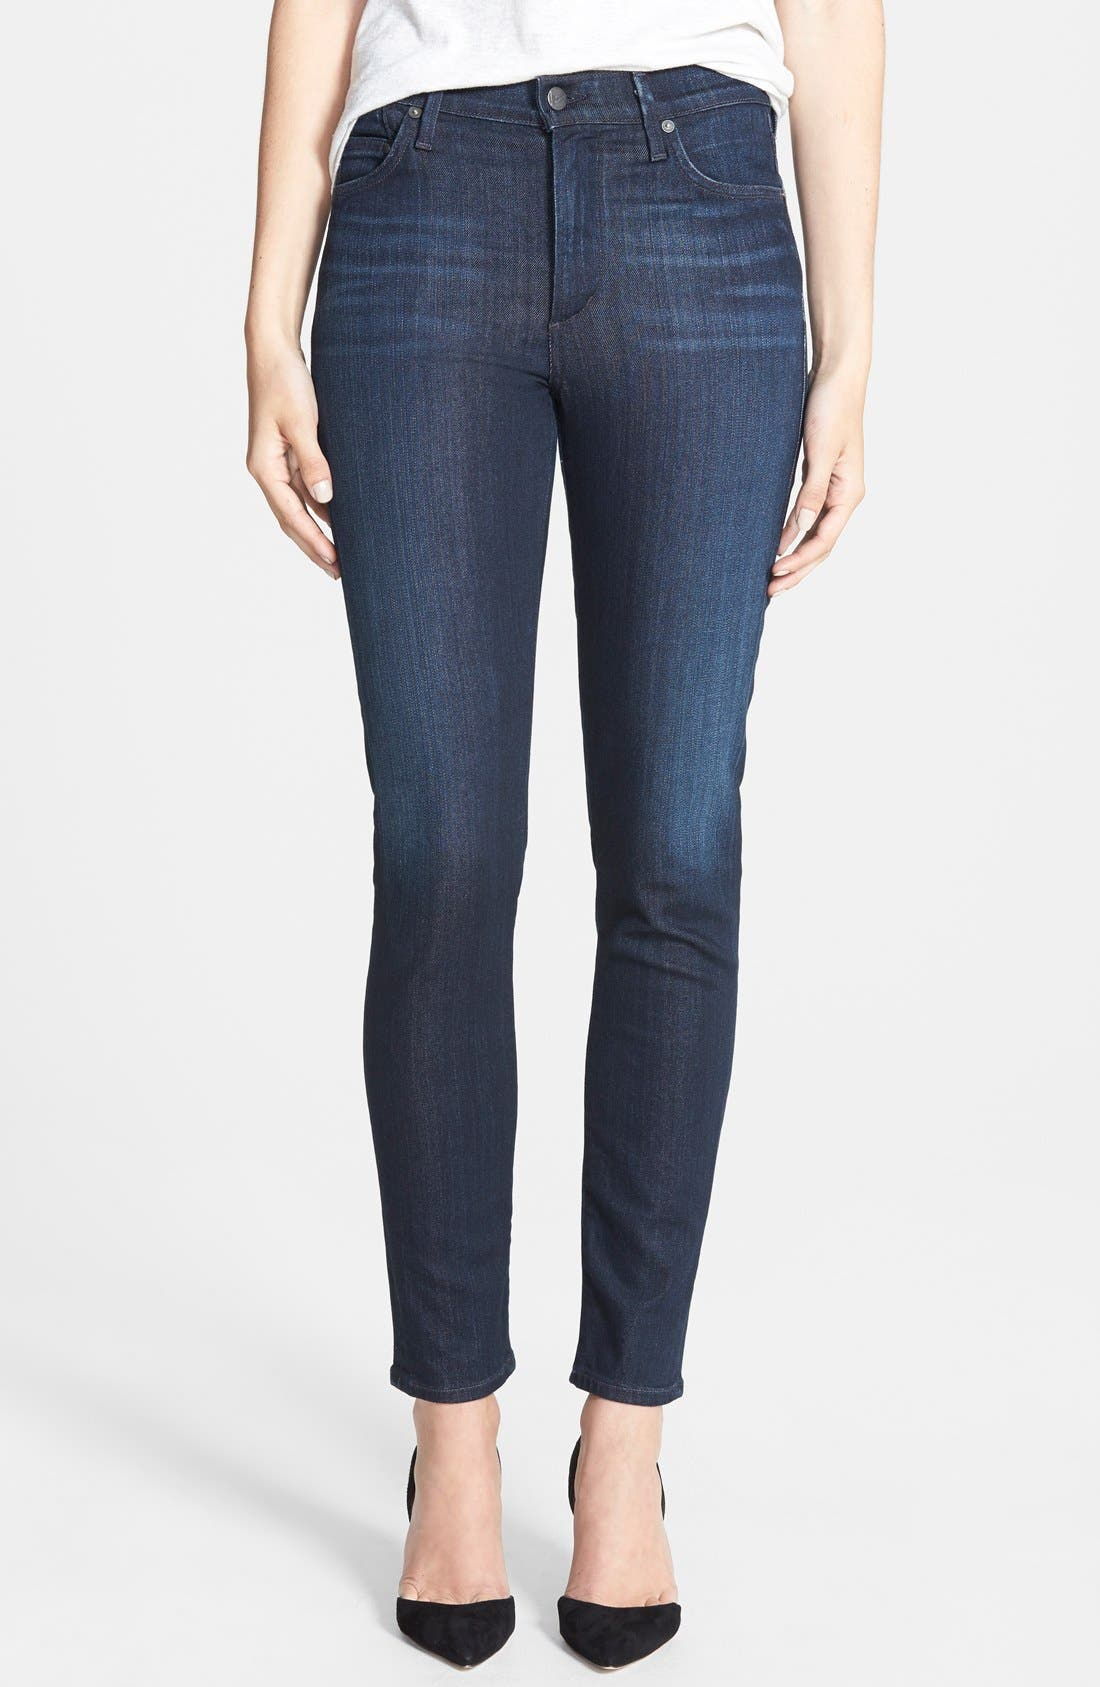 Main Image - Citizens of Humanity 'Rocket' High Rise Skinny Jeans (Space)